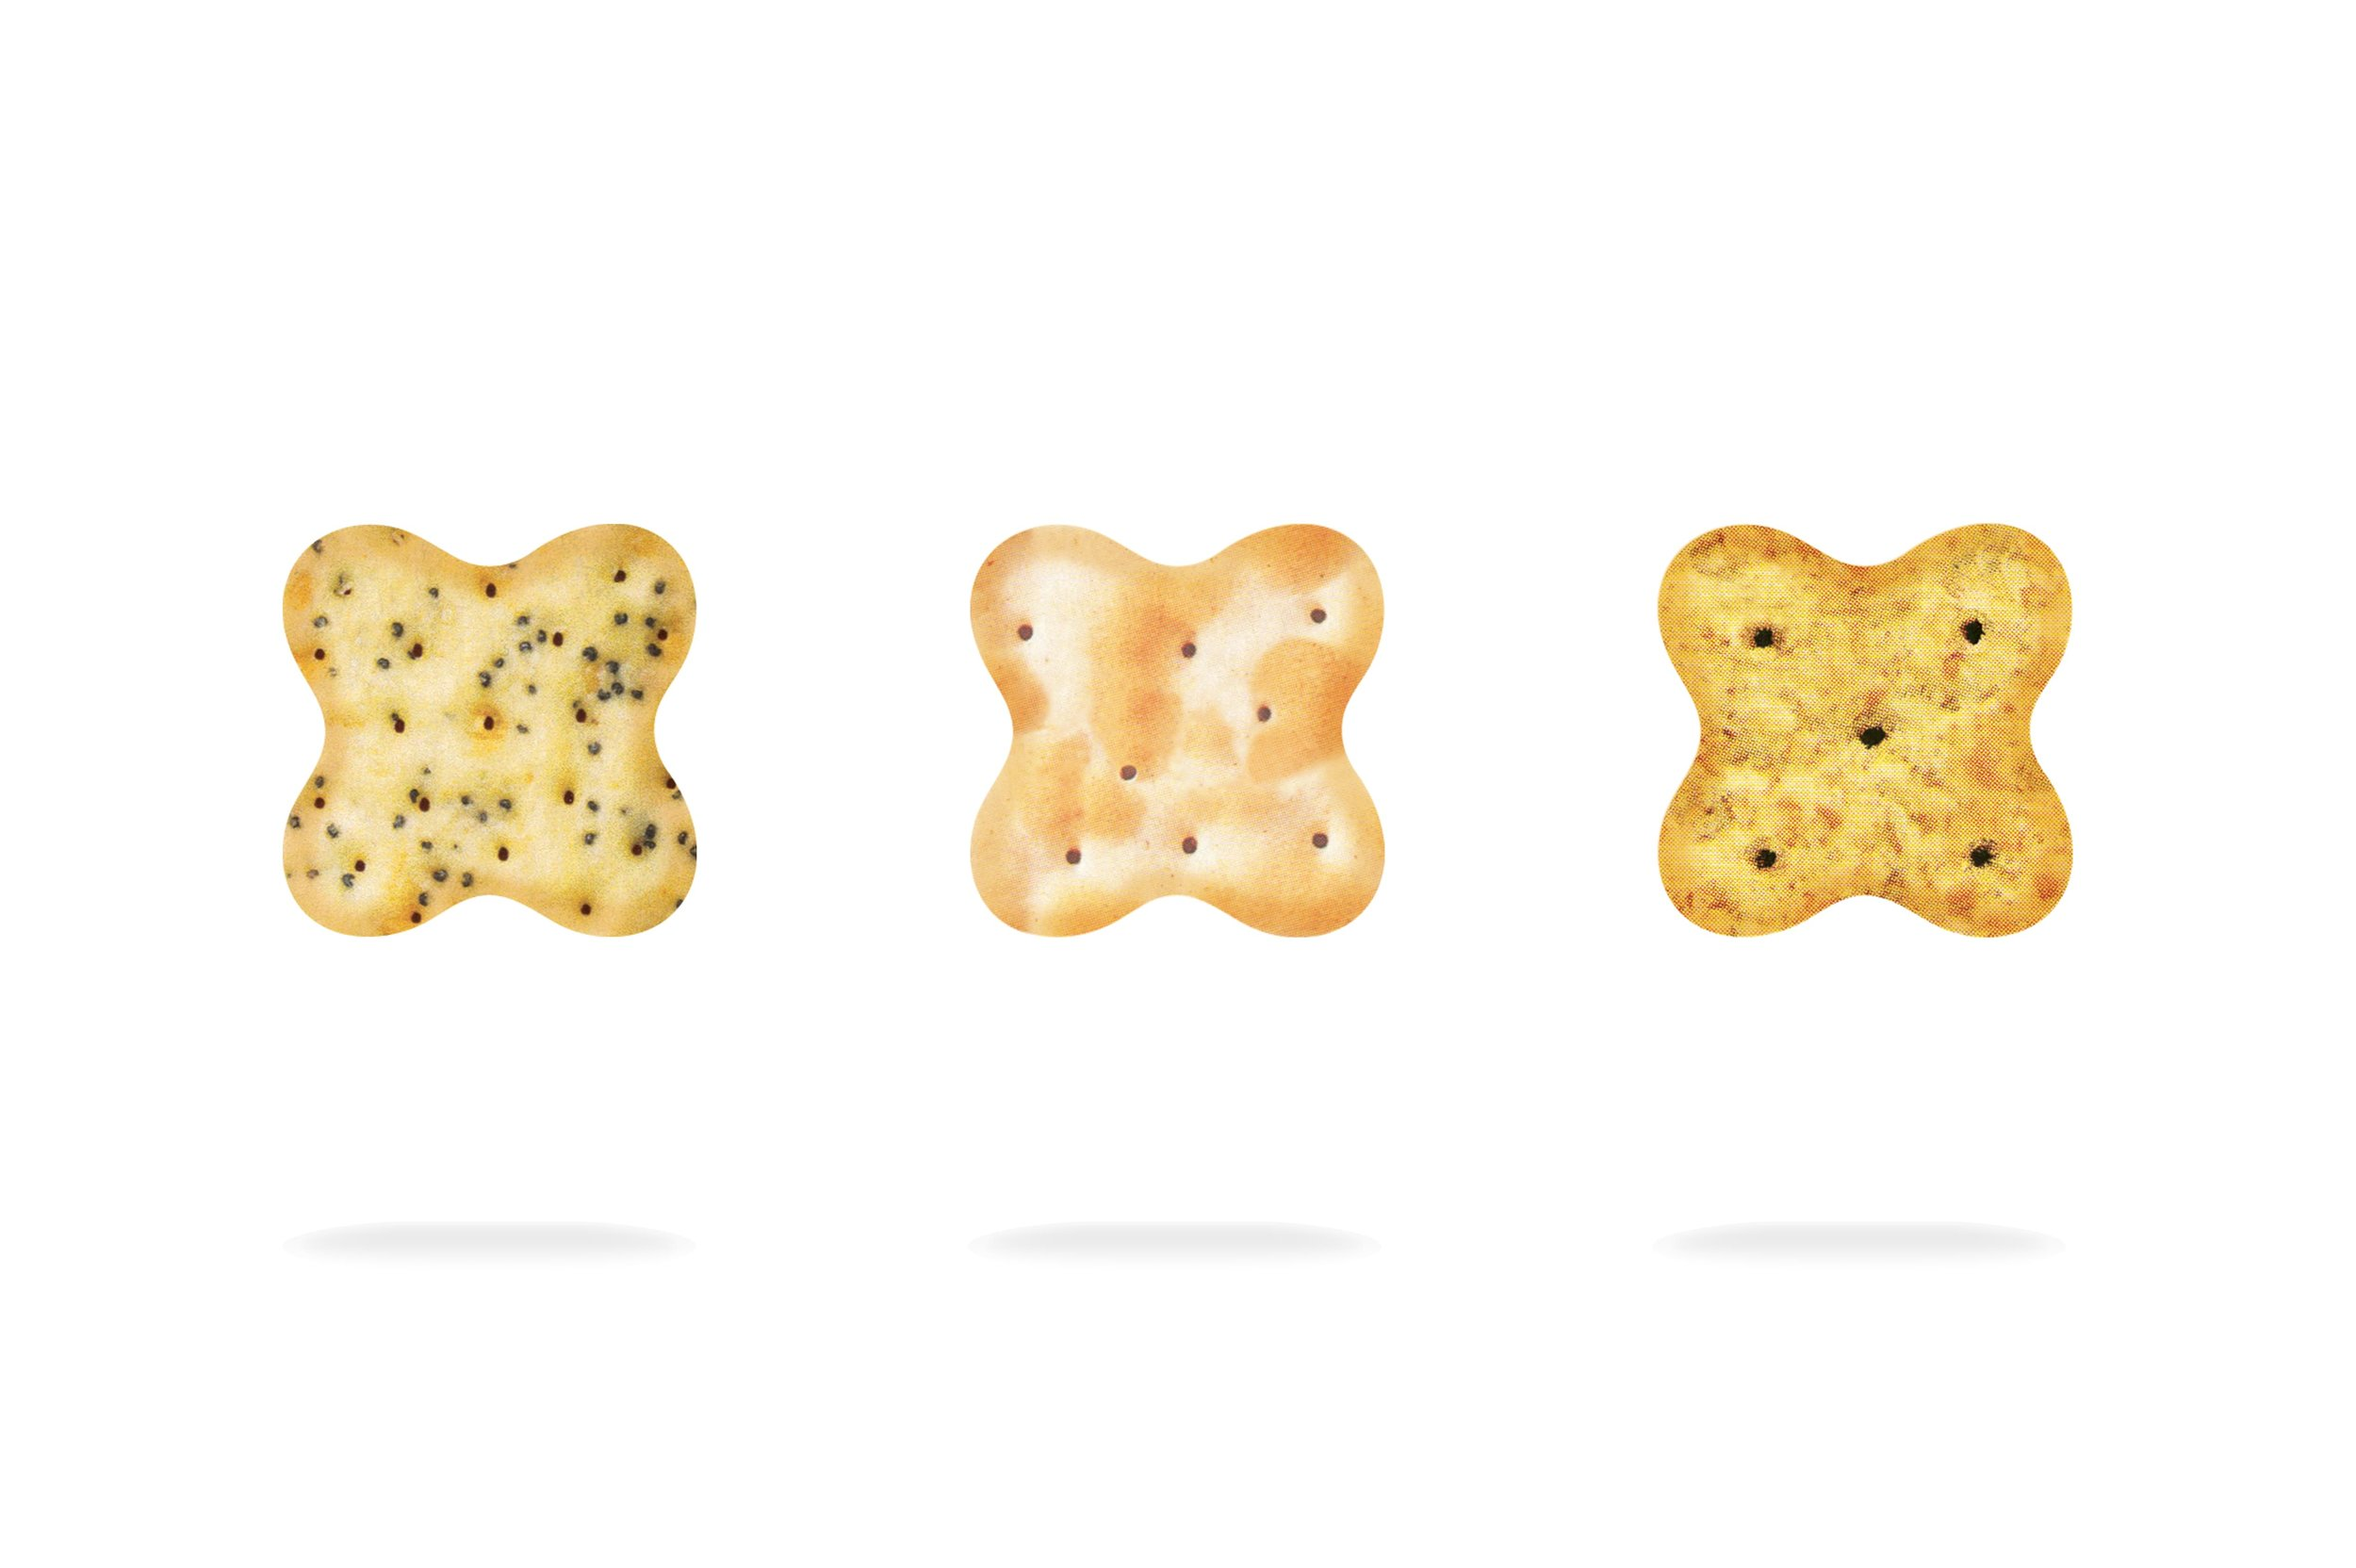 Redesign-Carr's-Biscuits-Redesign-cracker-shapes.jpg